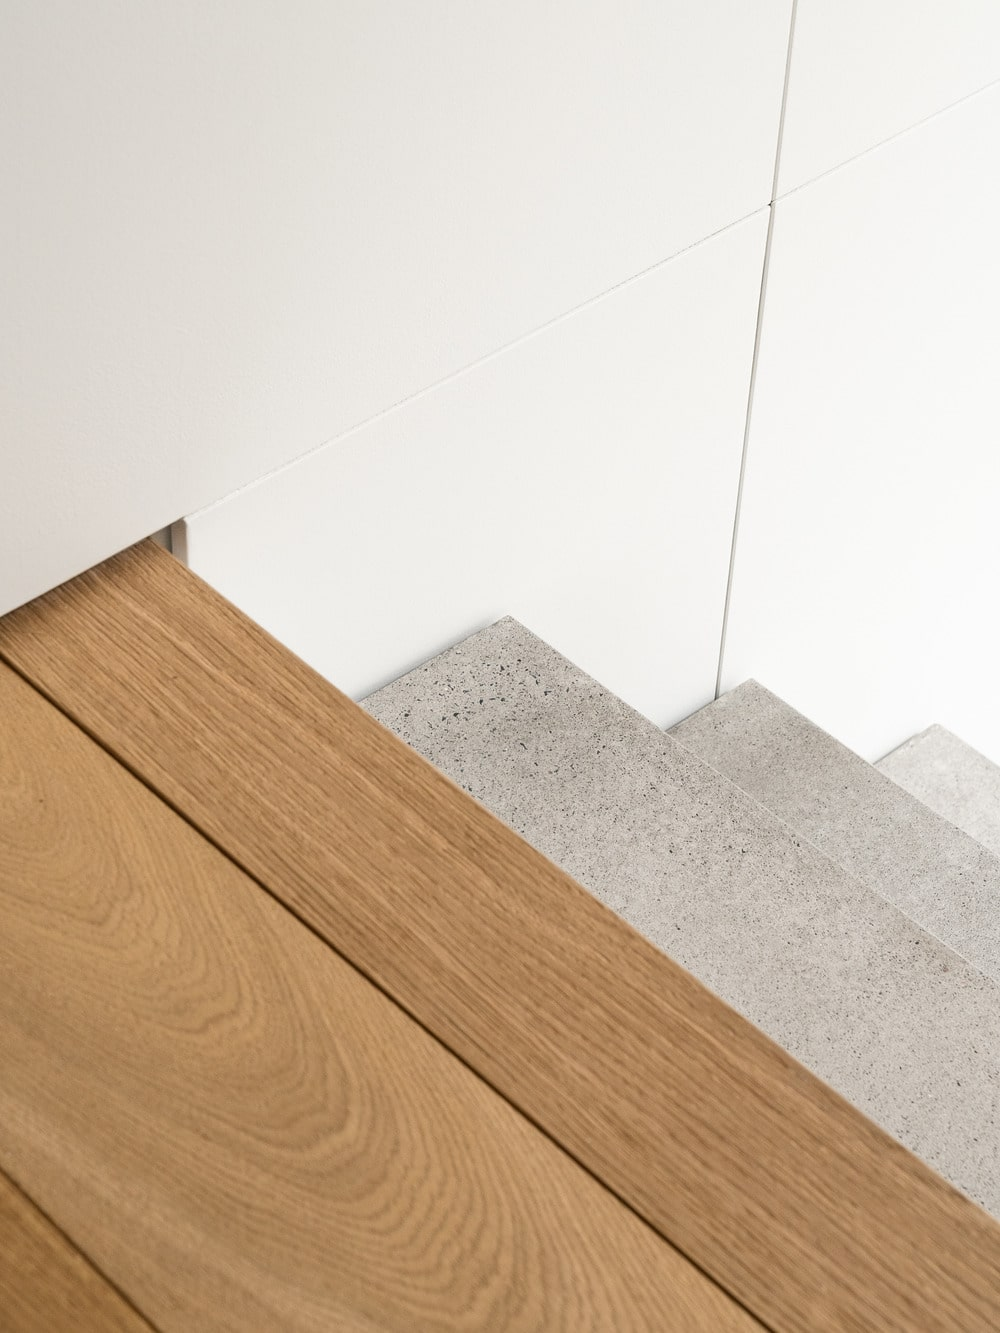 This is a look down the stairs from the vantage of the landing that has a hardwood flooring.